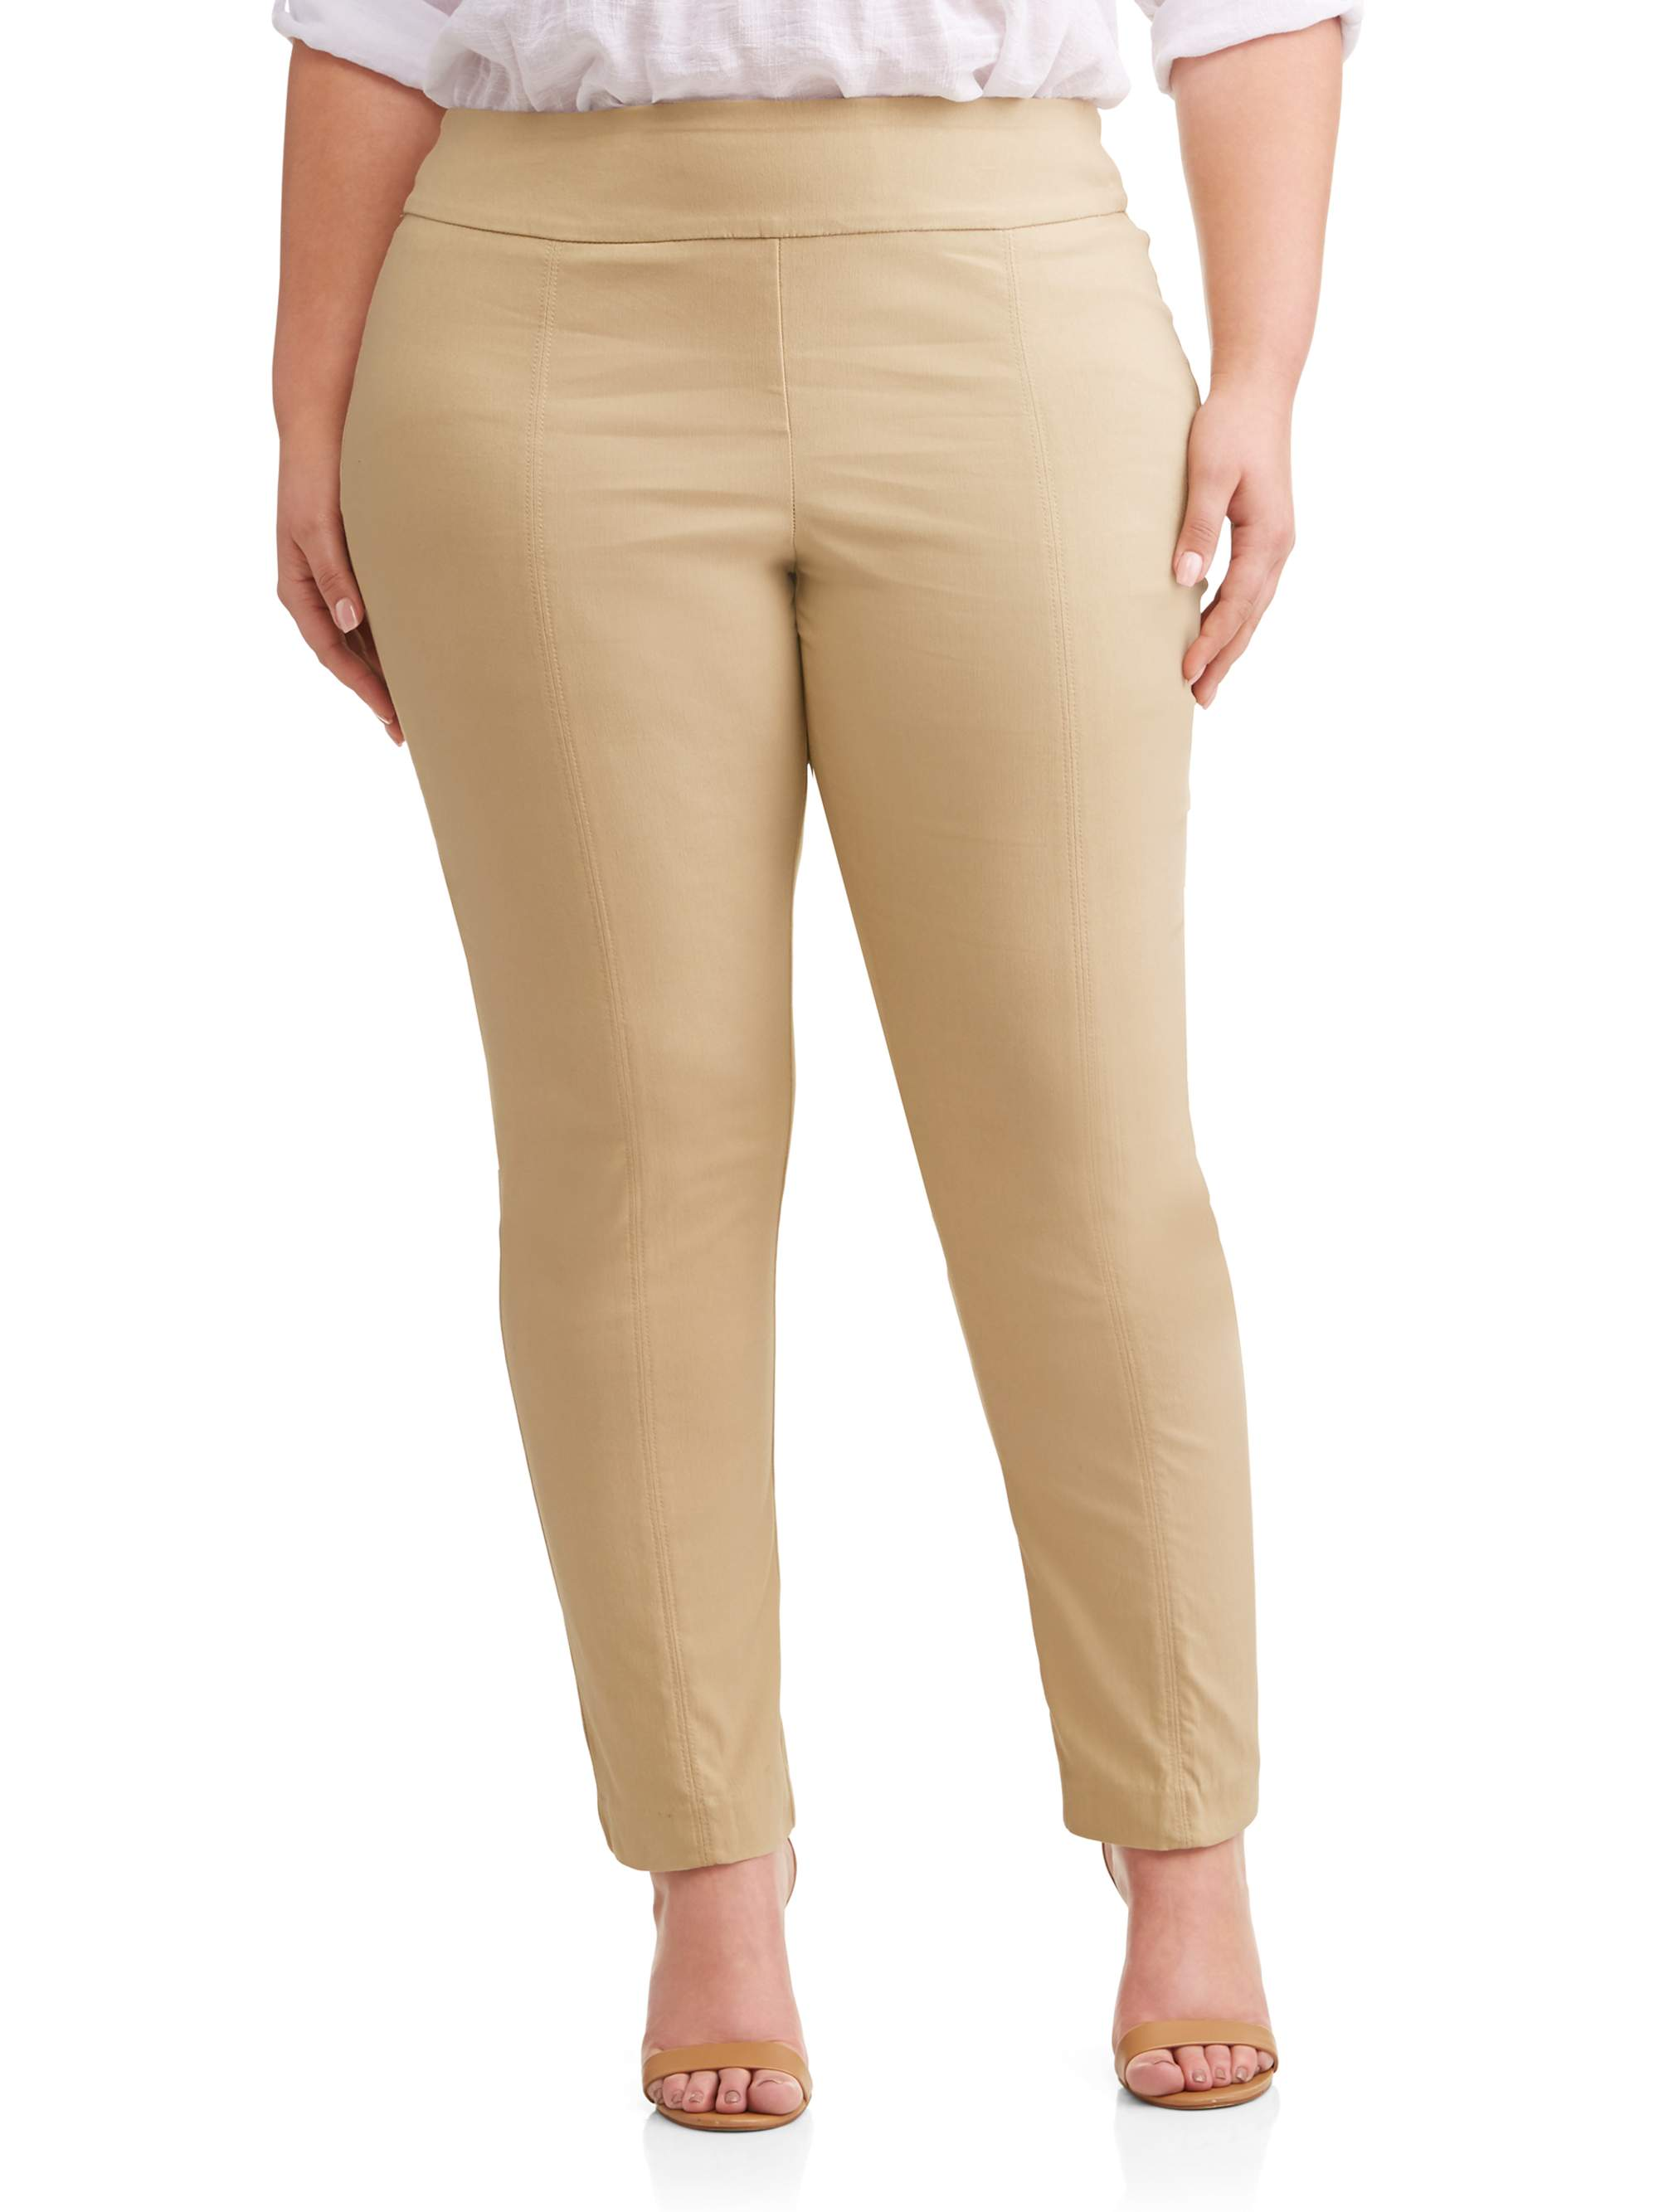 Women's Plus Size Pull On Career Pant with Tummy Control